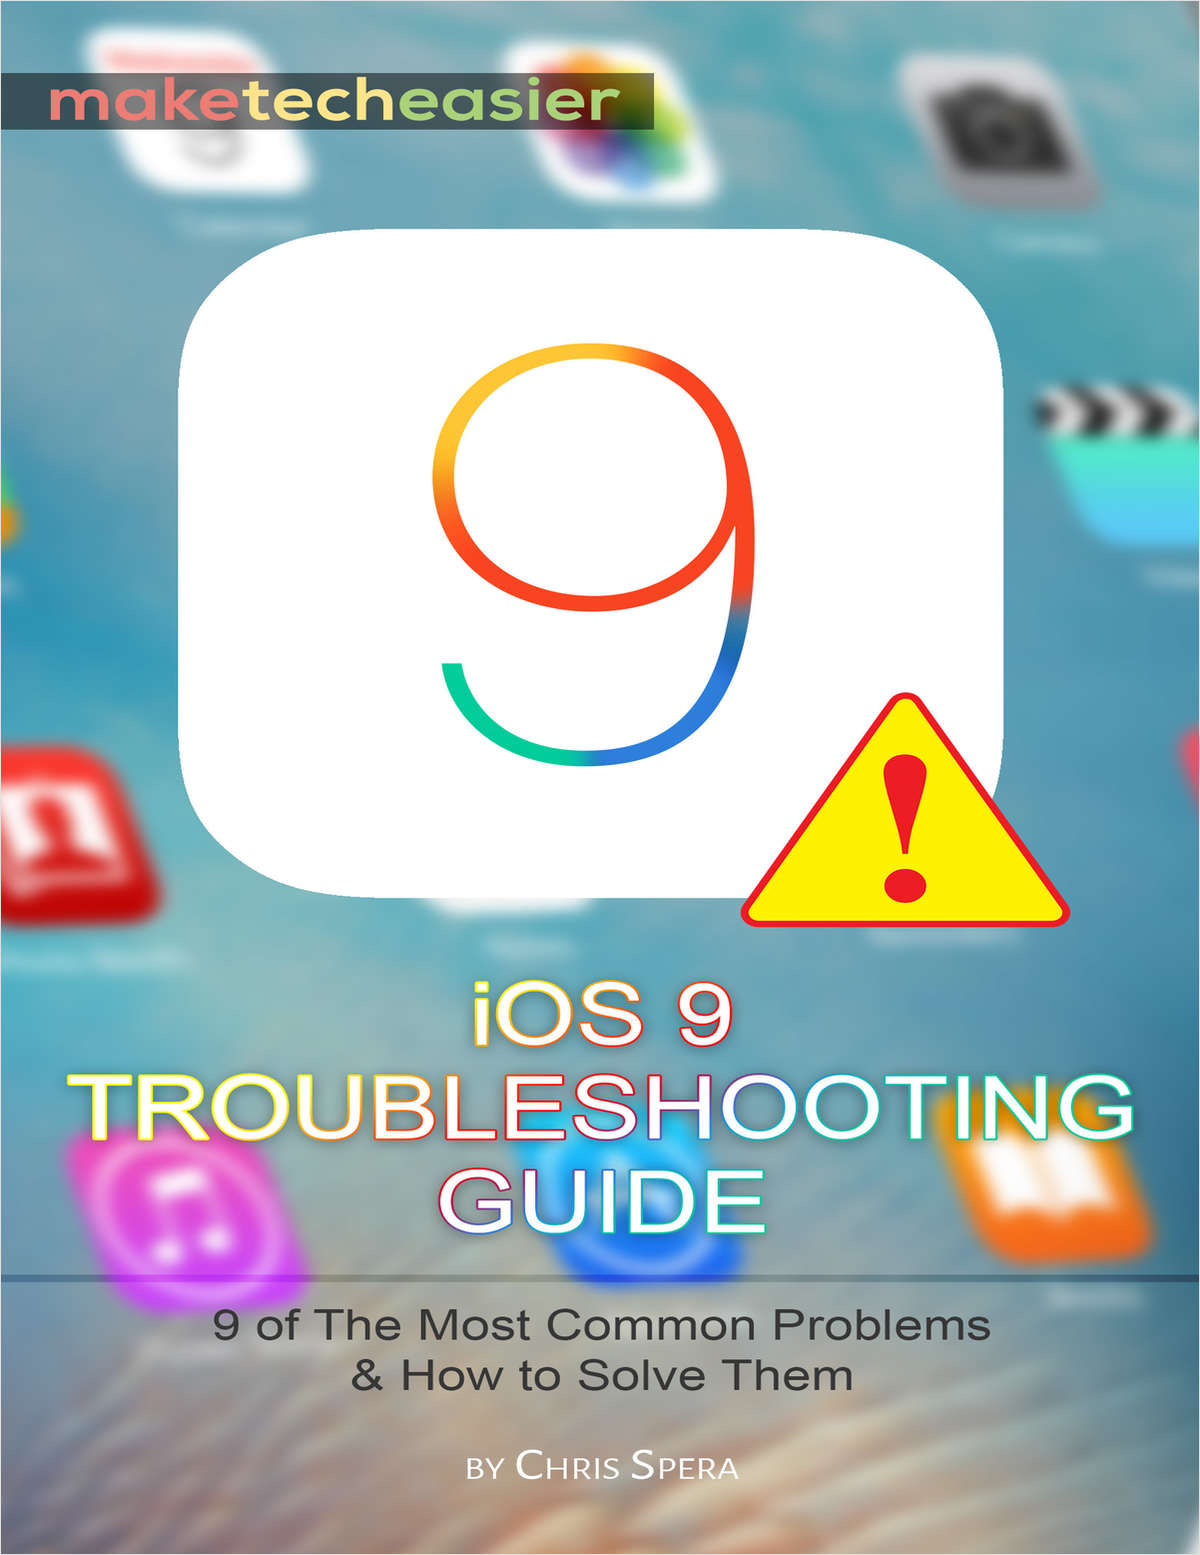 iOS 9 Troubleshooting Guide